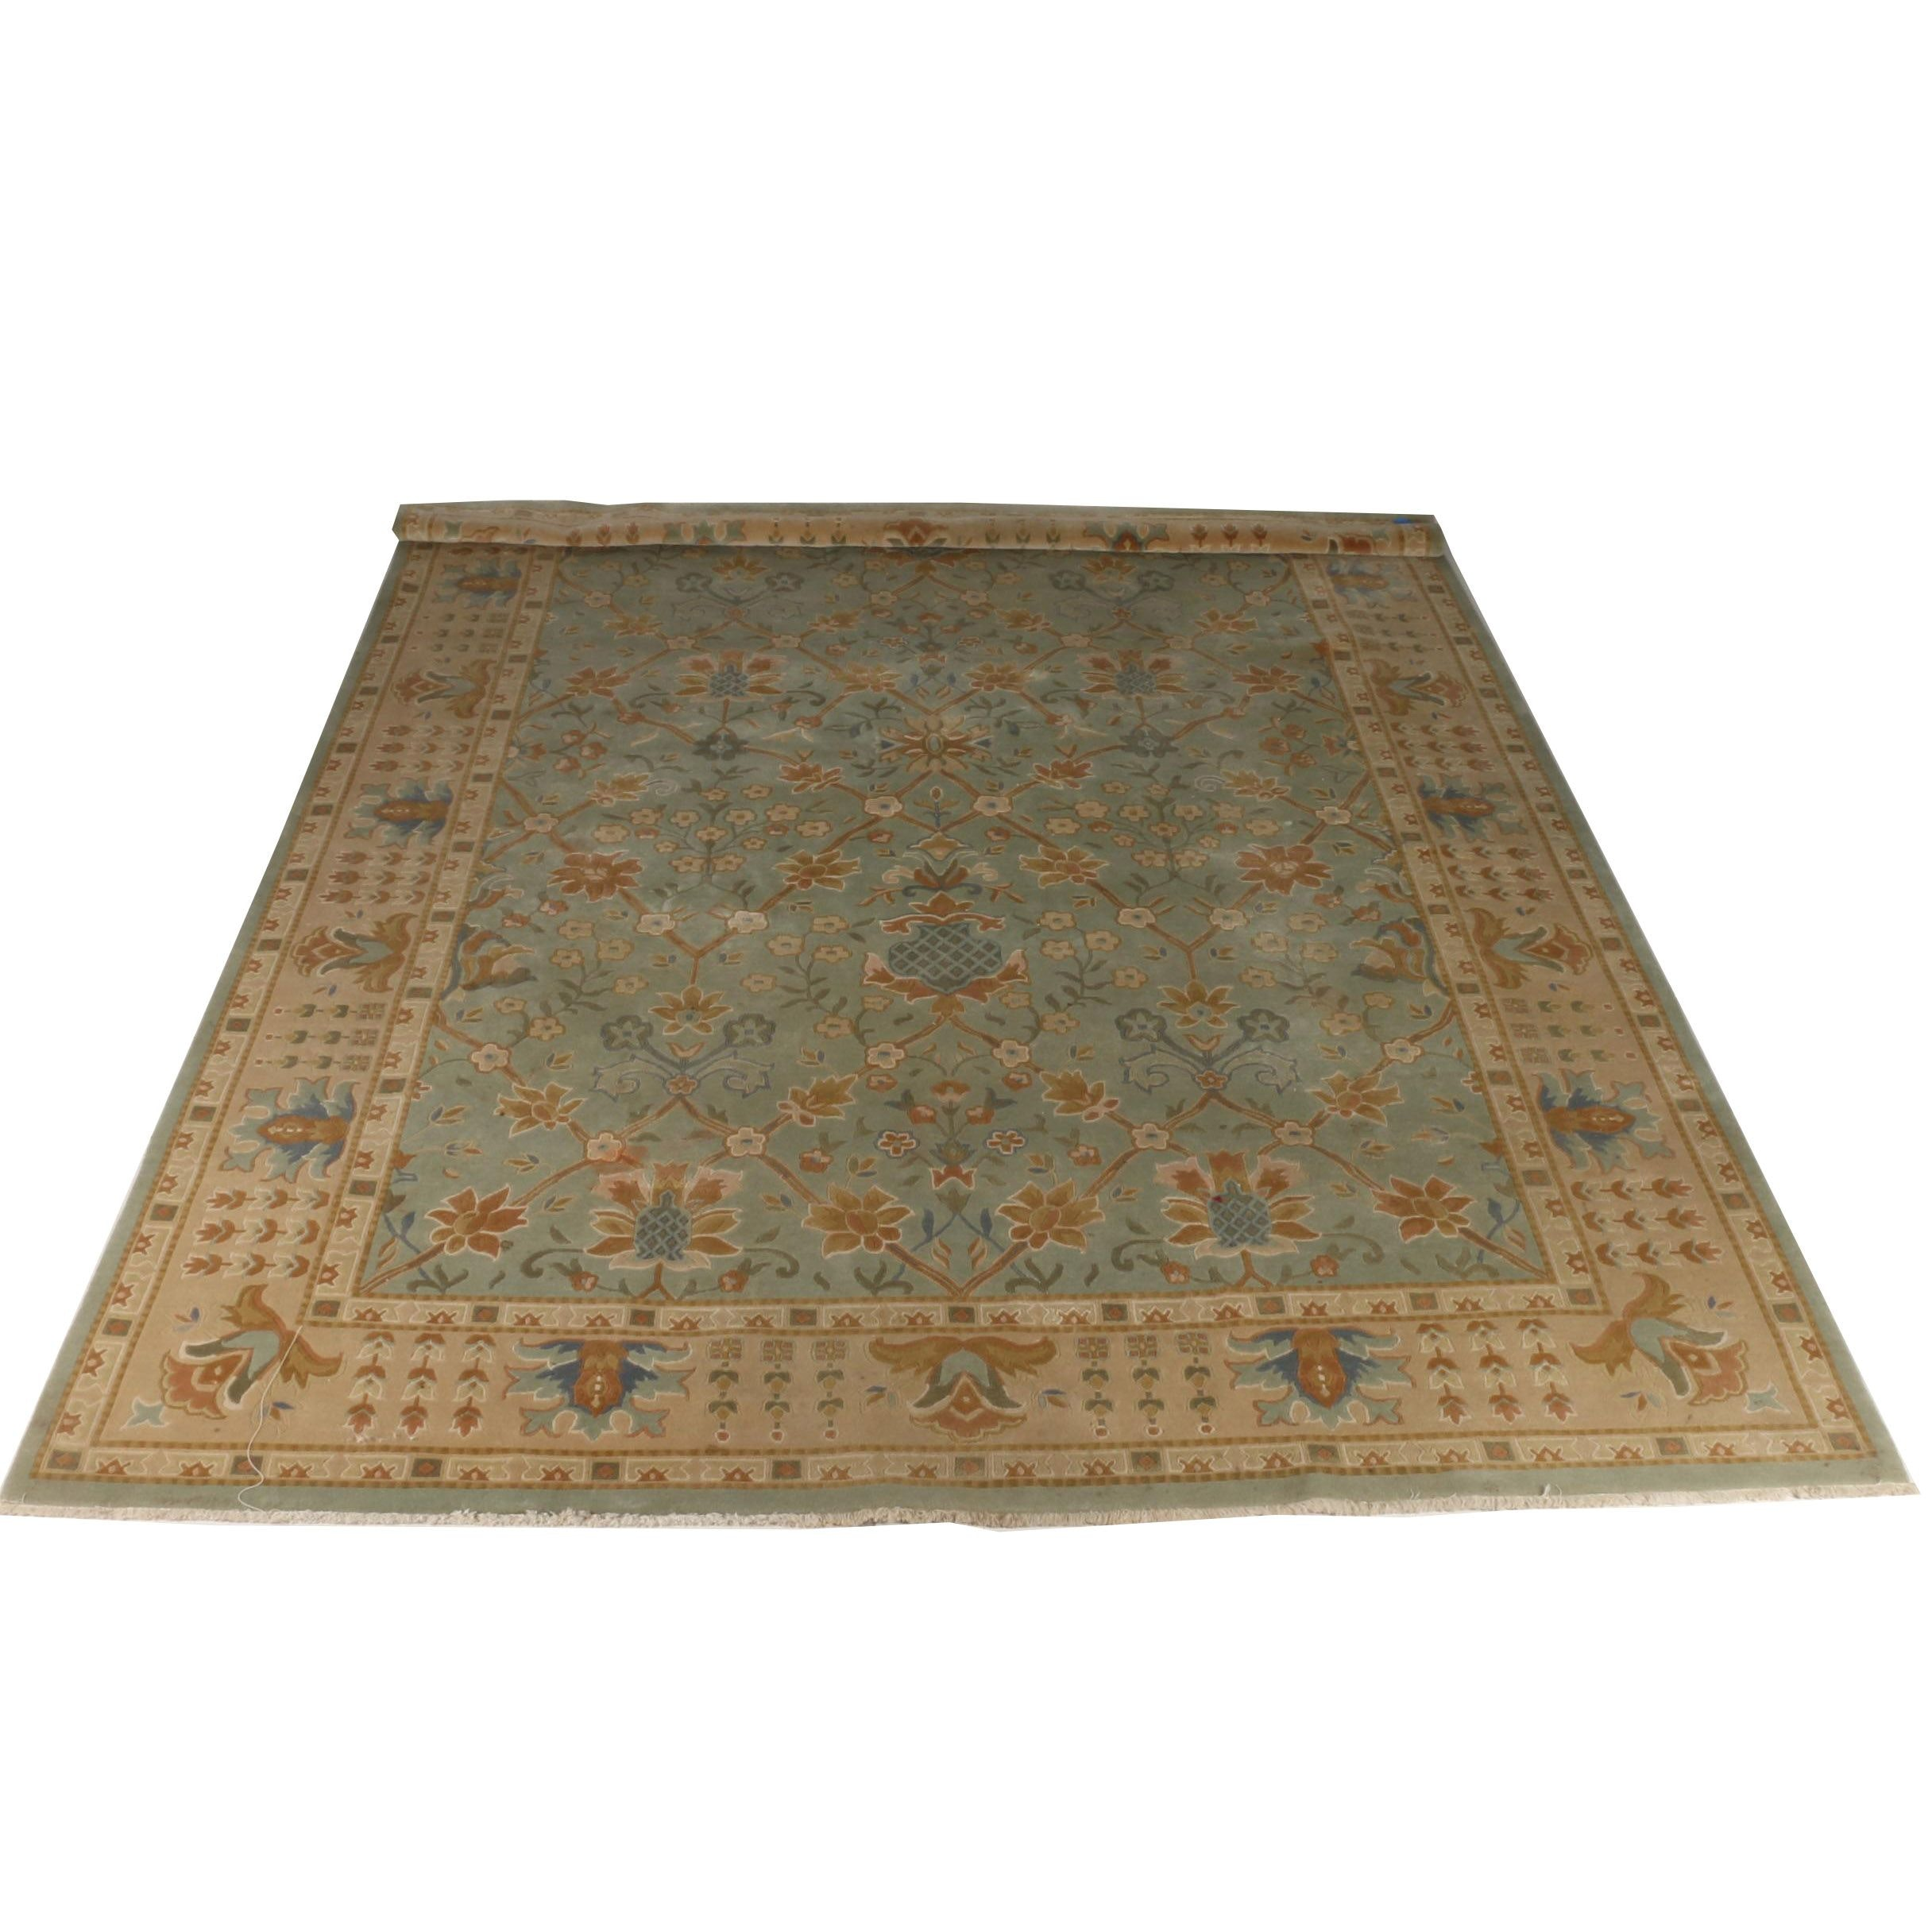 Hand-Knotted Ethan Allen Kerman Area Rug